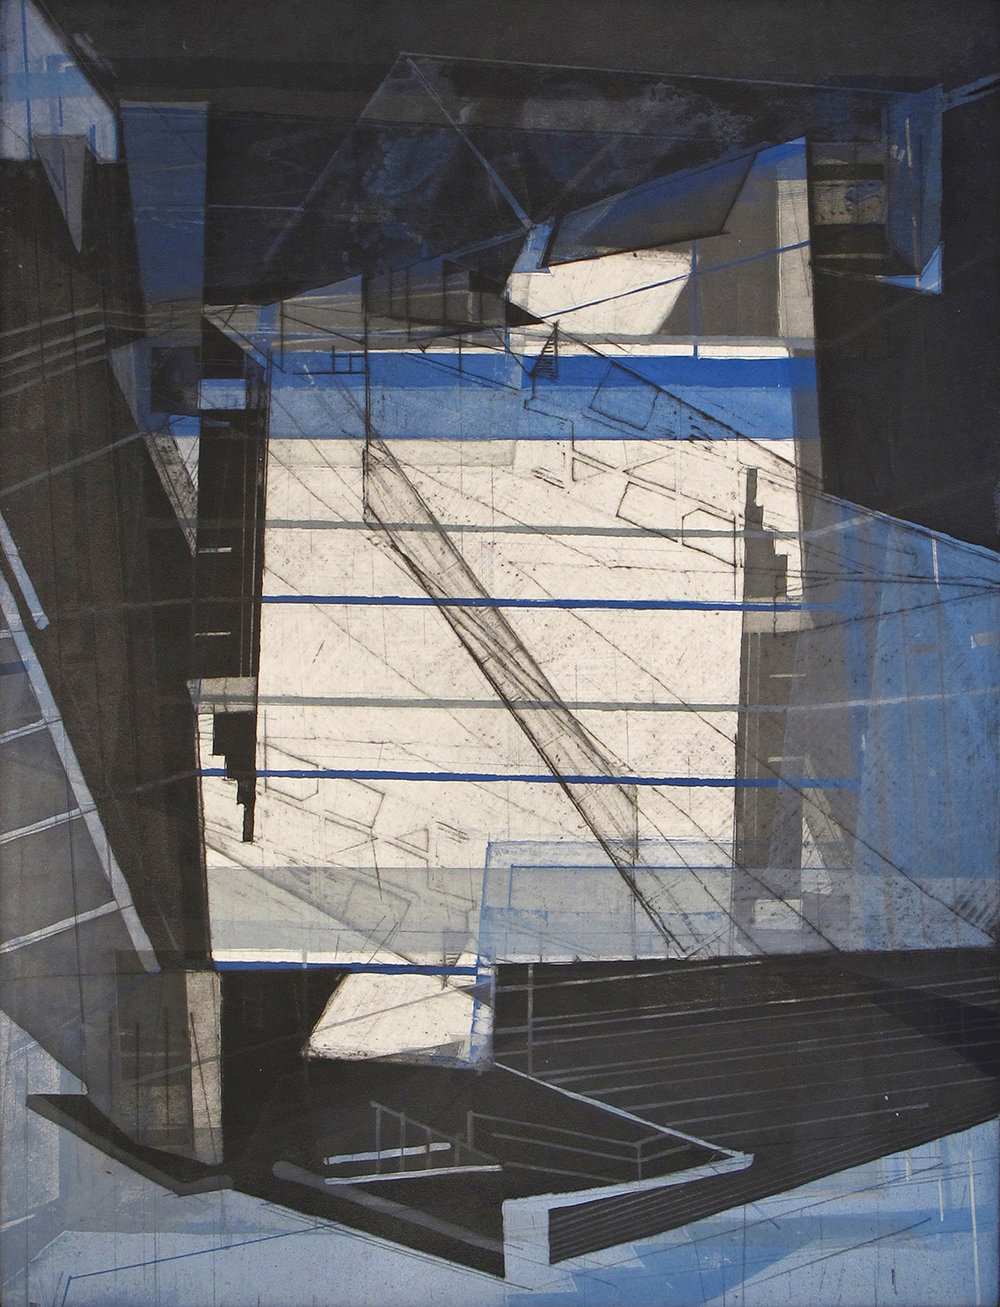 "Architectural Possibles 6   etching and aquatint   on Revere paper  image size: 24x18""  2013"